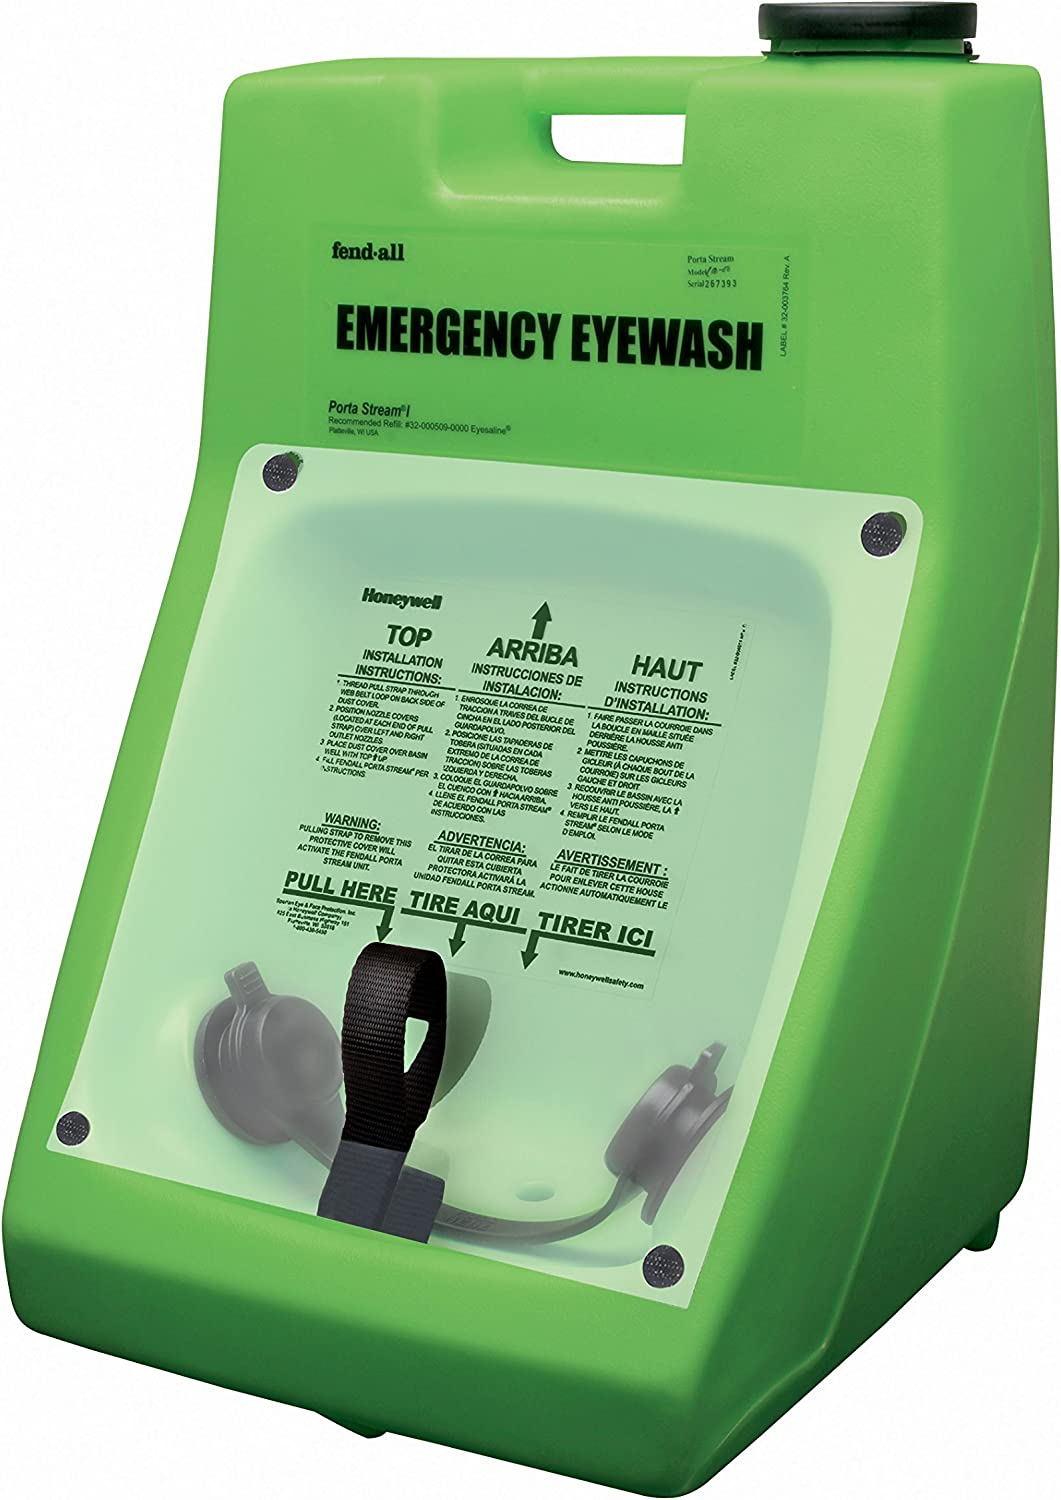 Honeywell Emergency Eye Wash Station Expiration Timer